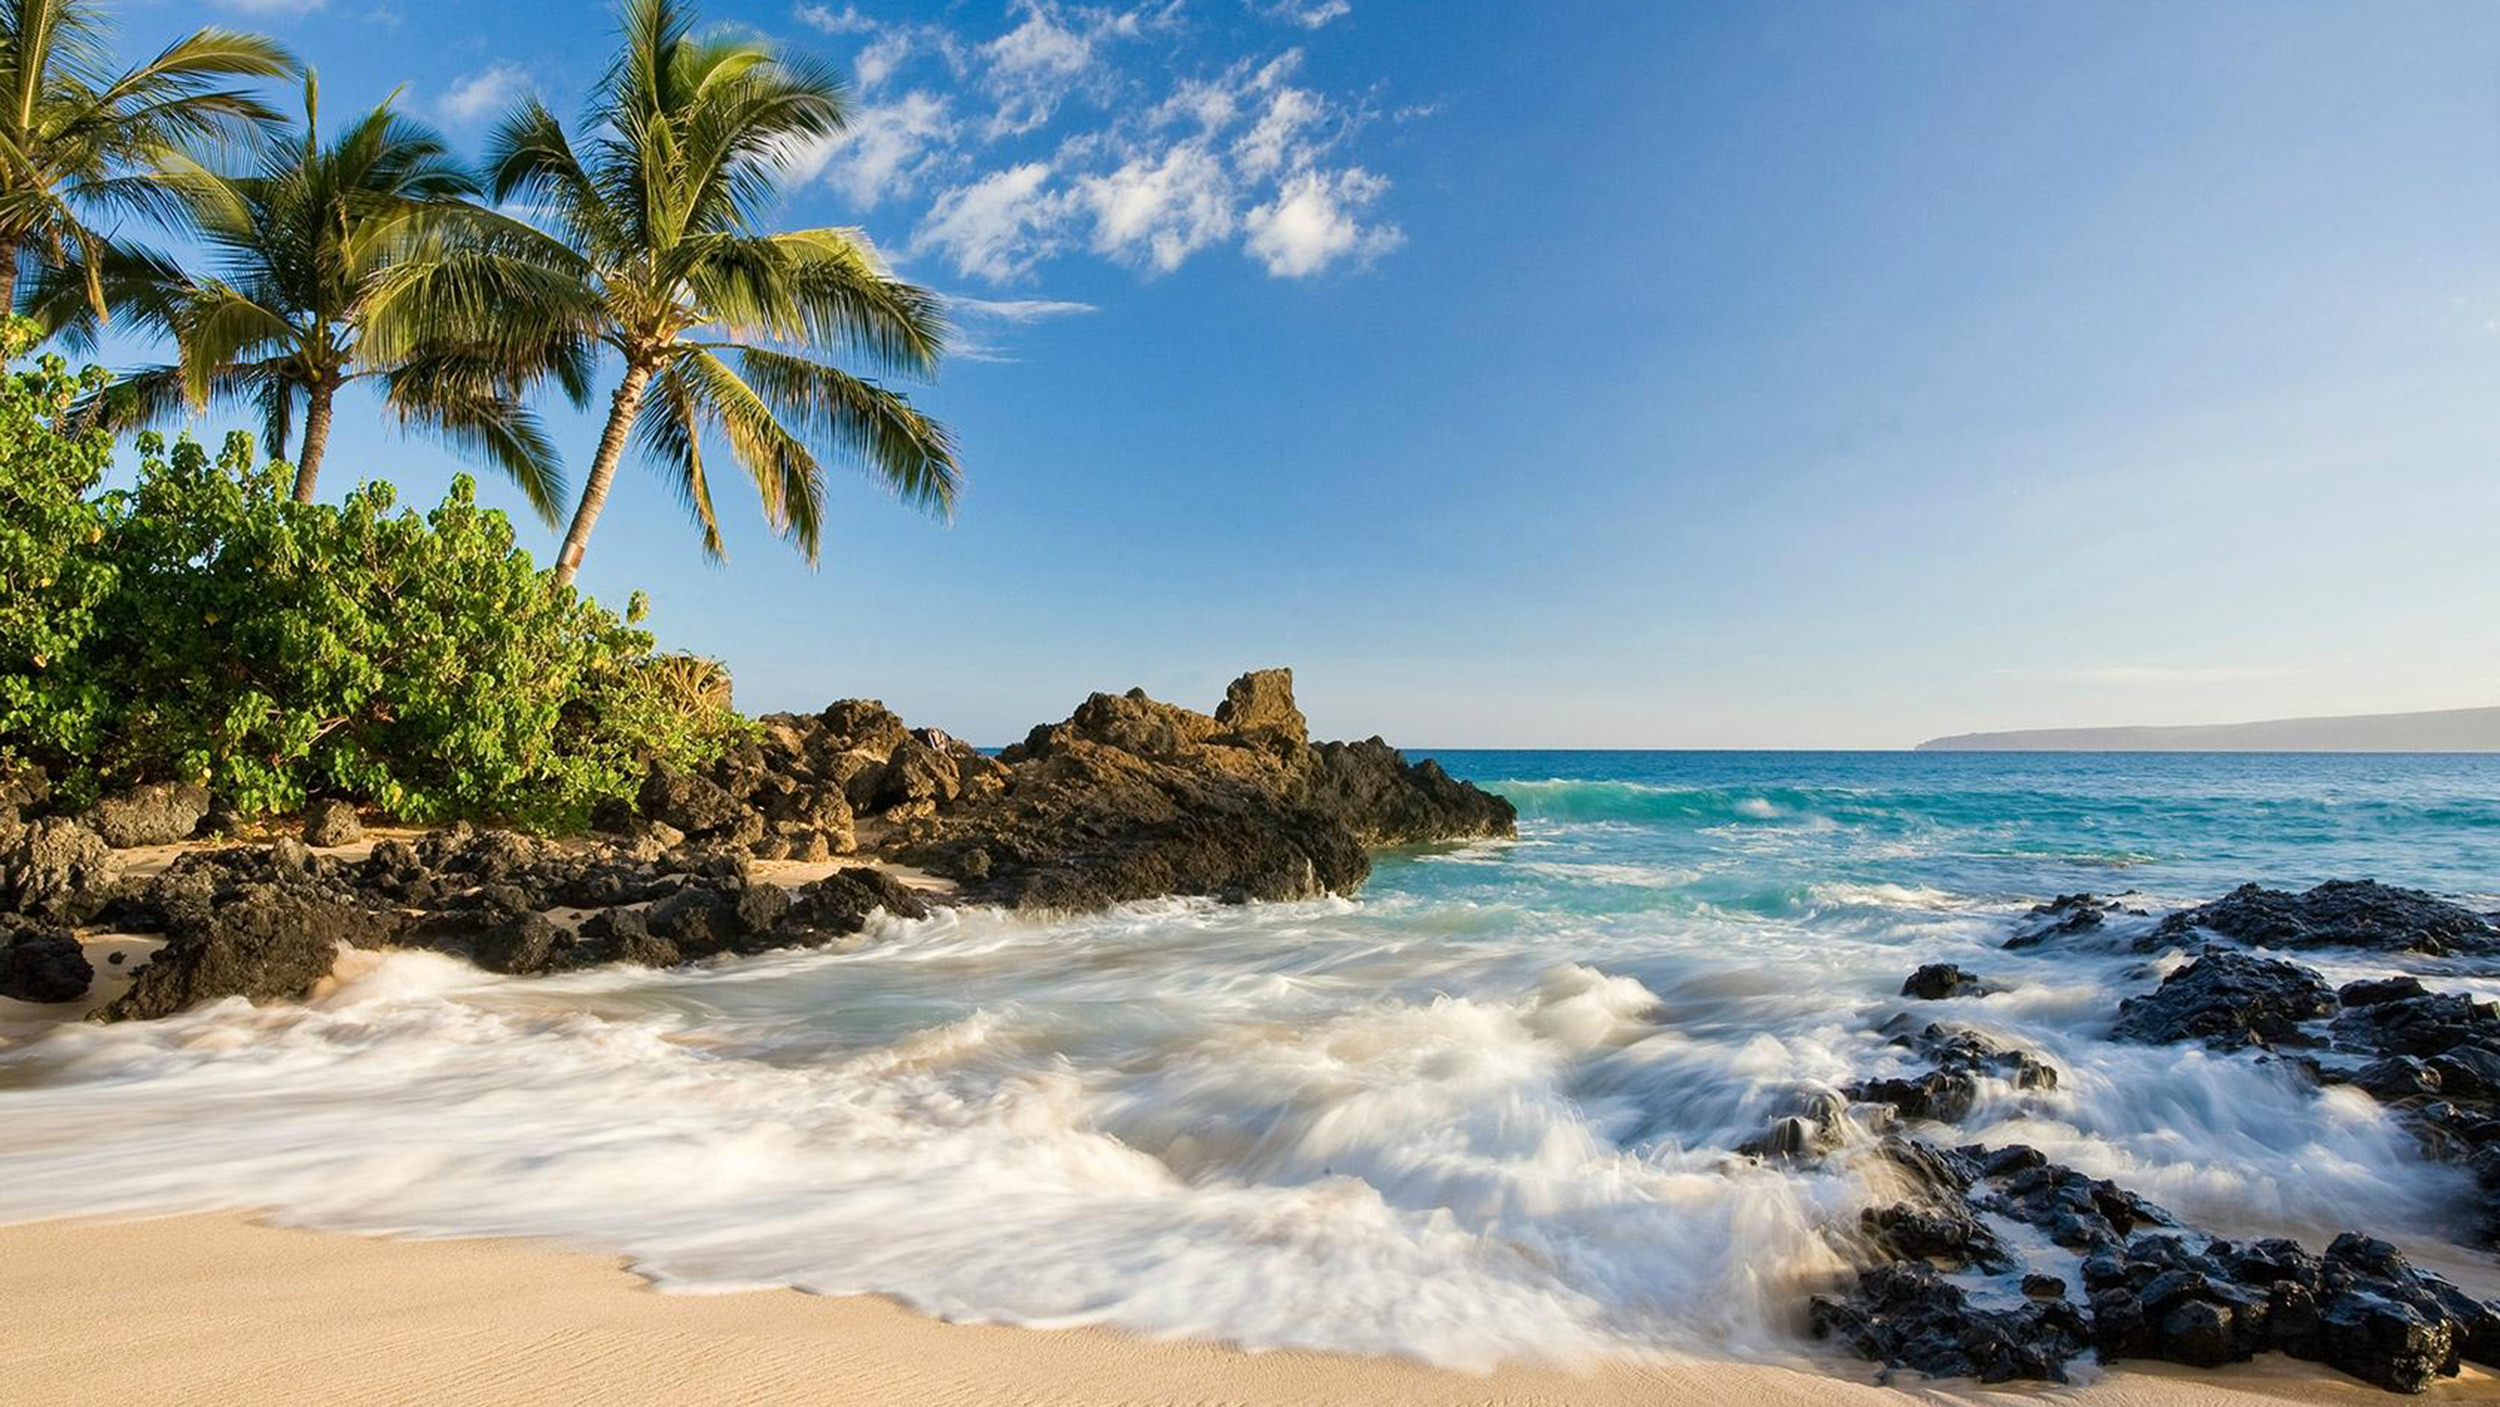 10 best islands in the US and world according to TripAdvisor